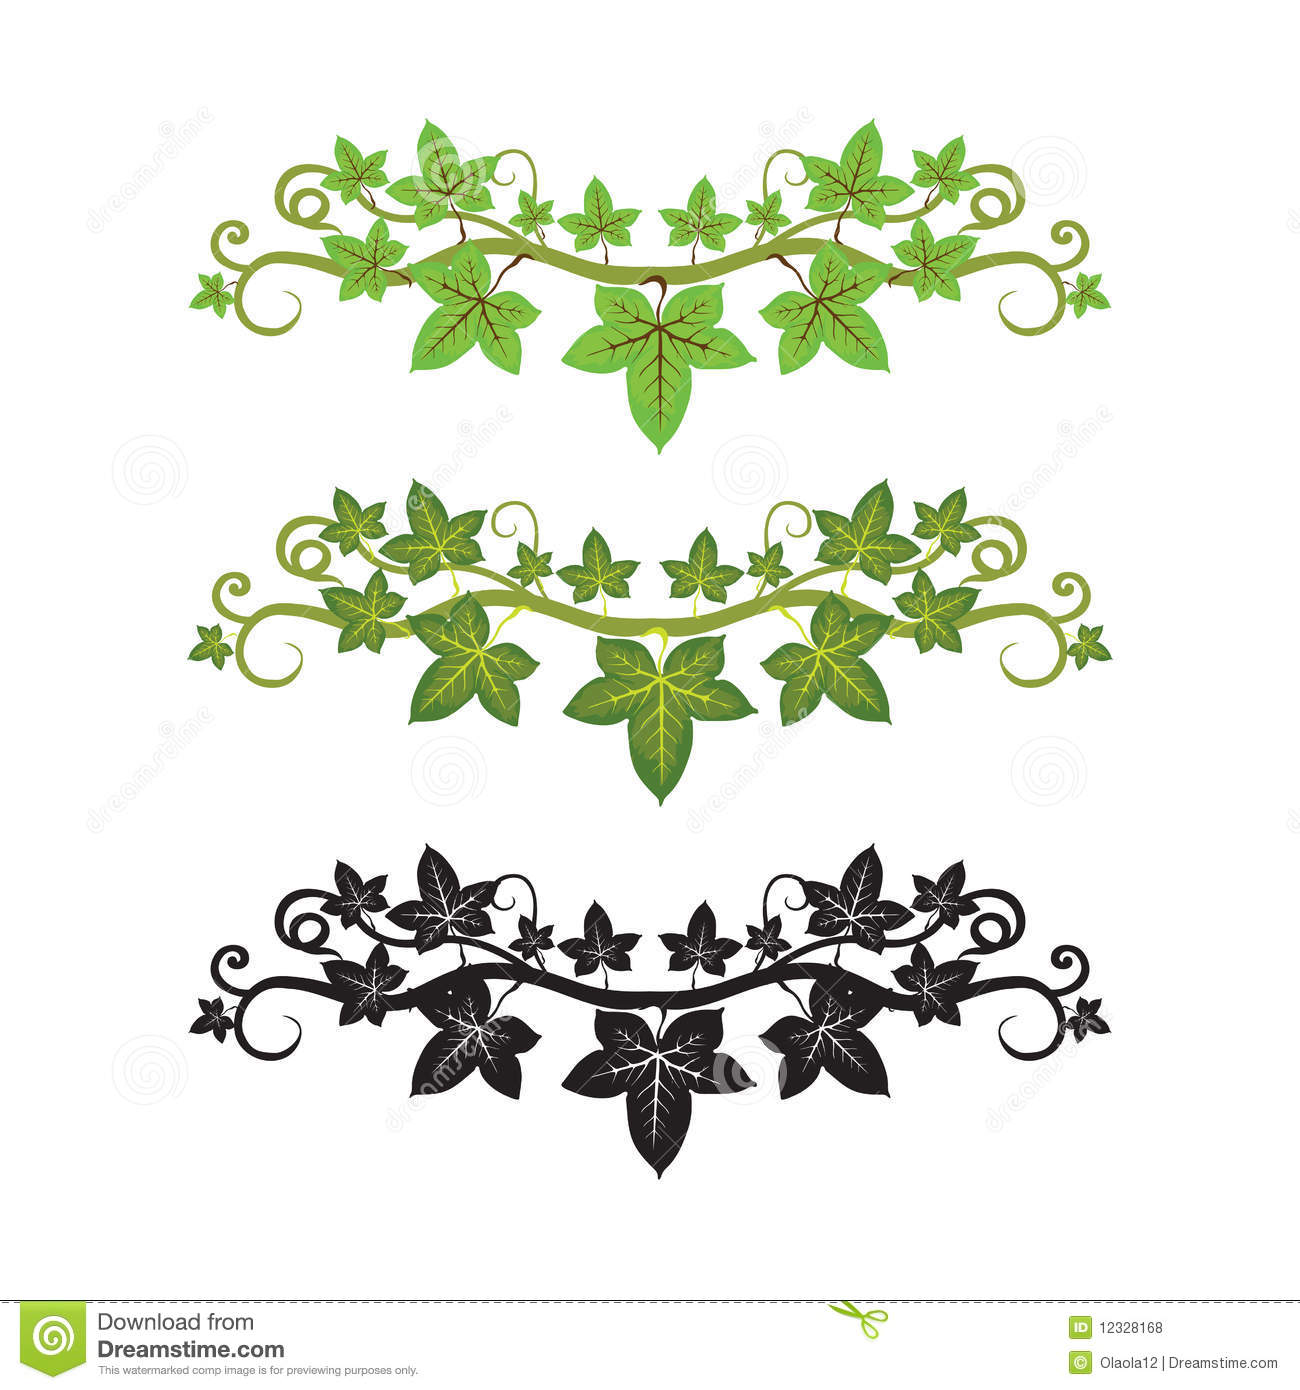 Lines clipart ivy Google art pattern one Ivy